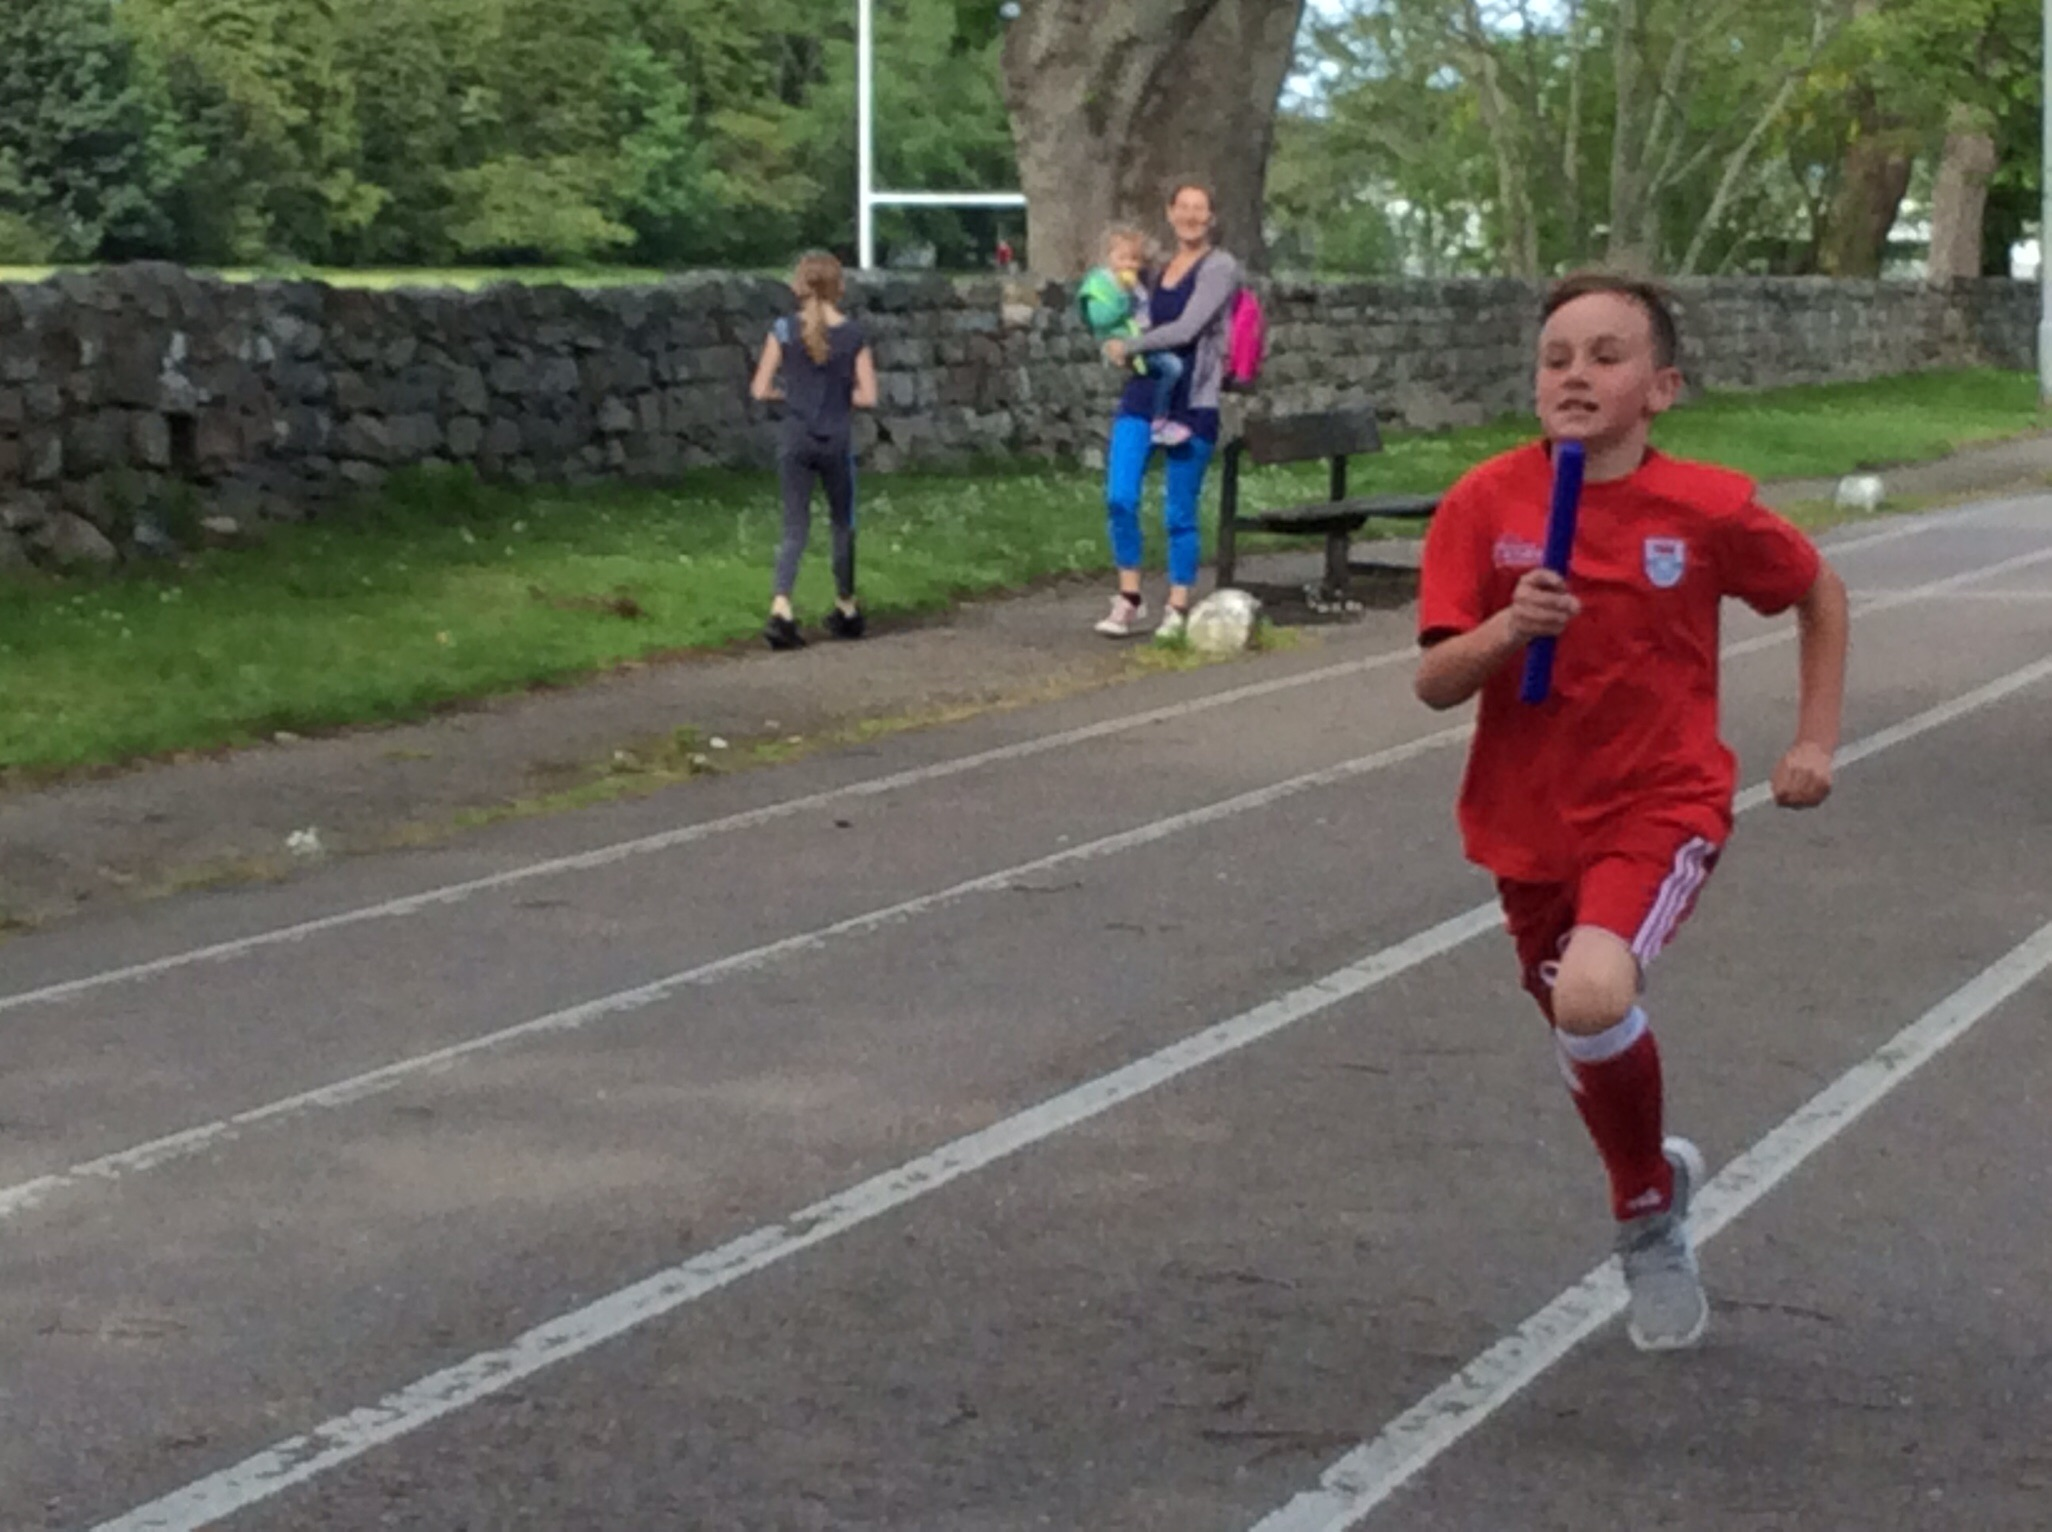 P4 Boy finishing the relay for his team